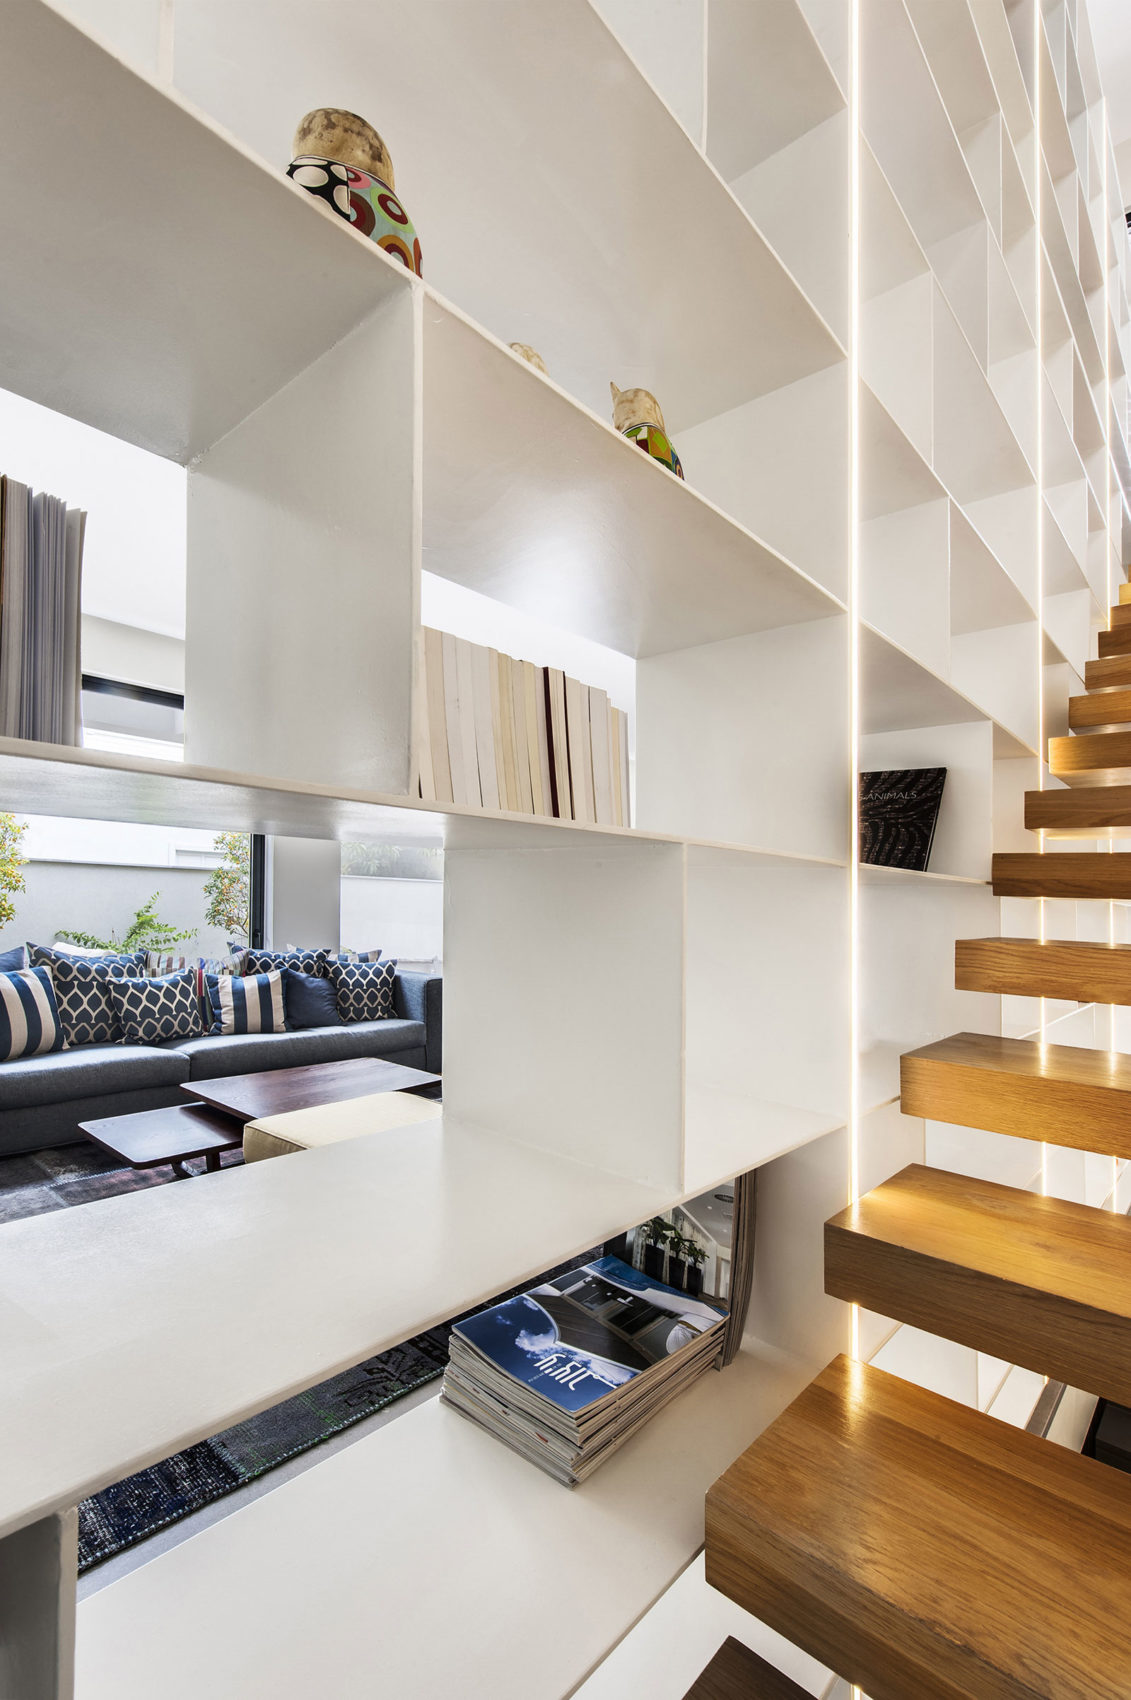 D House by Paz Gersh Architects (9)